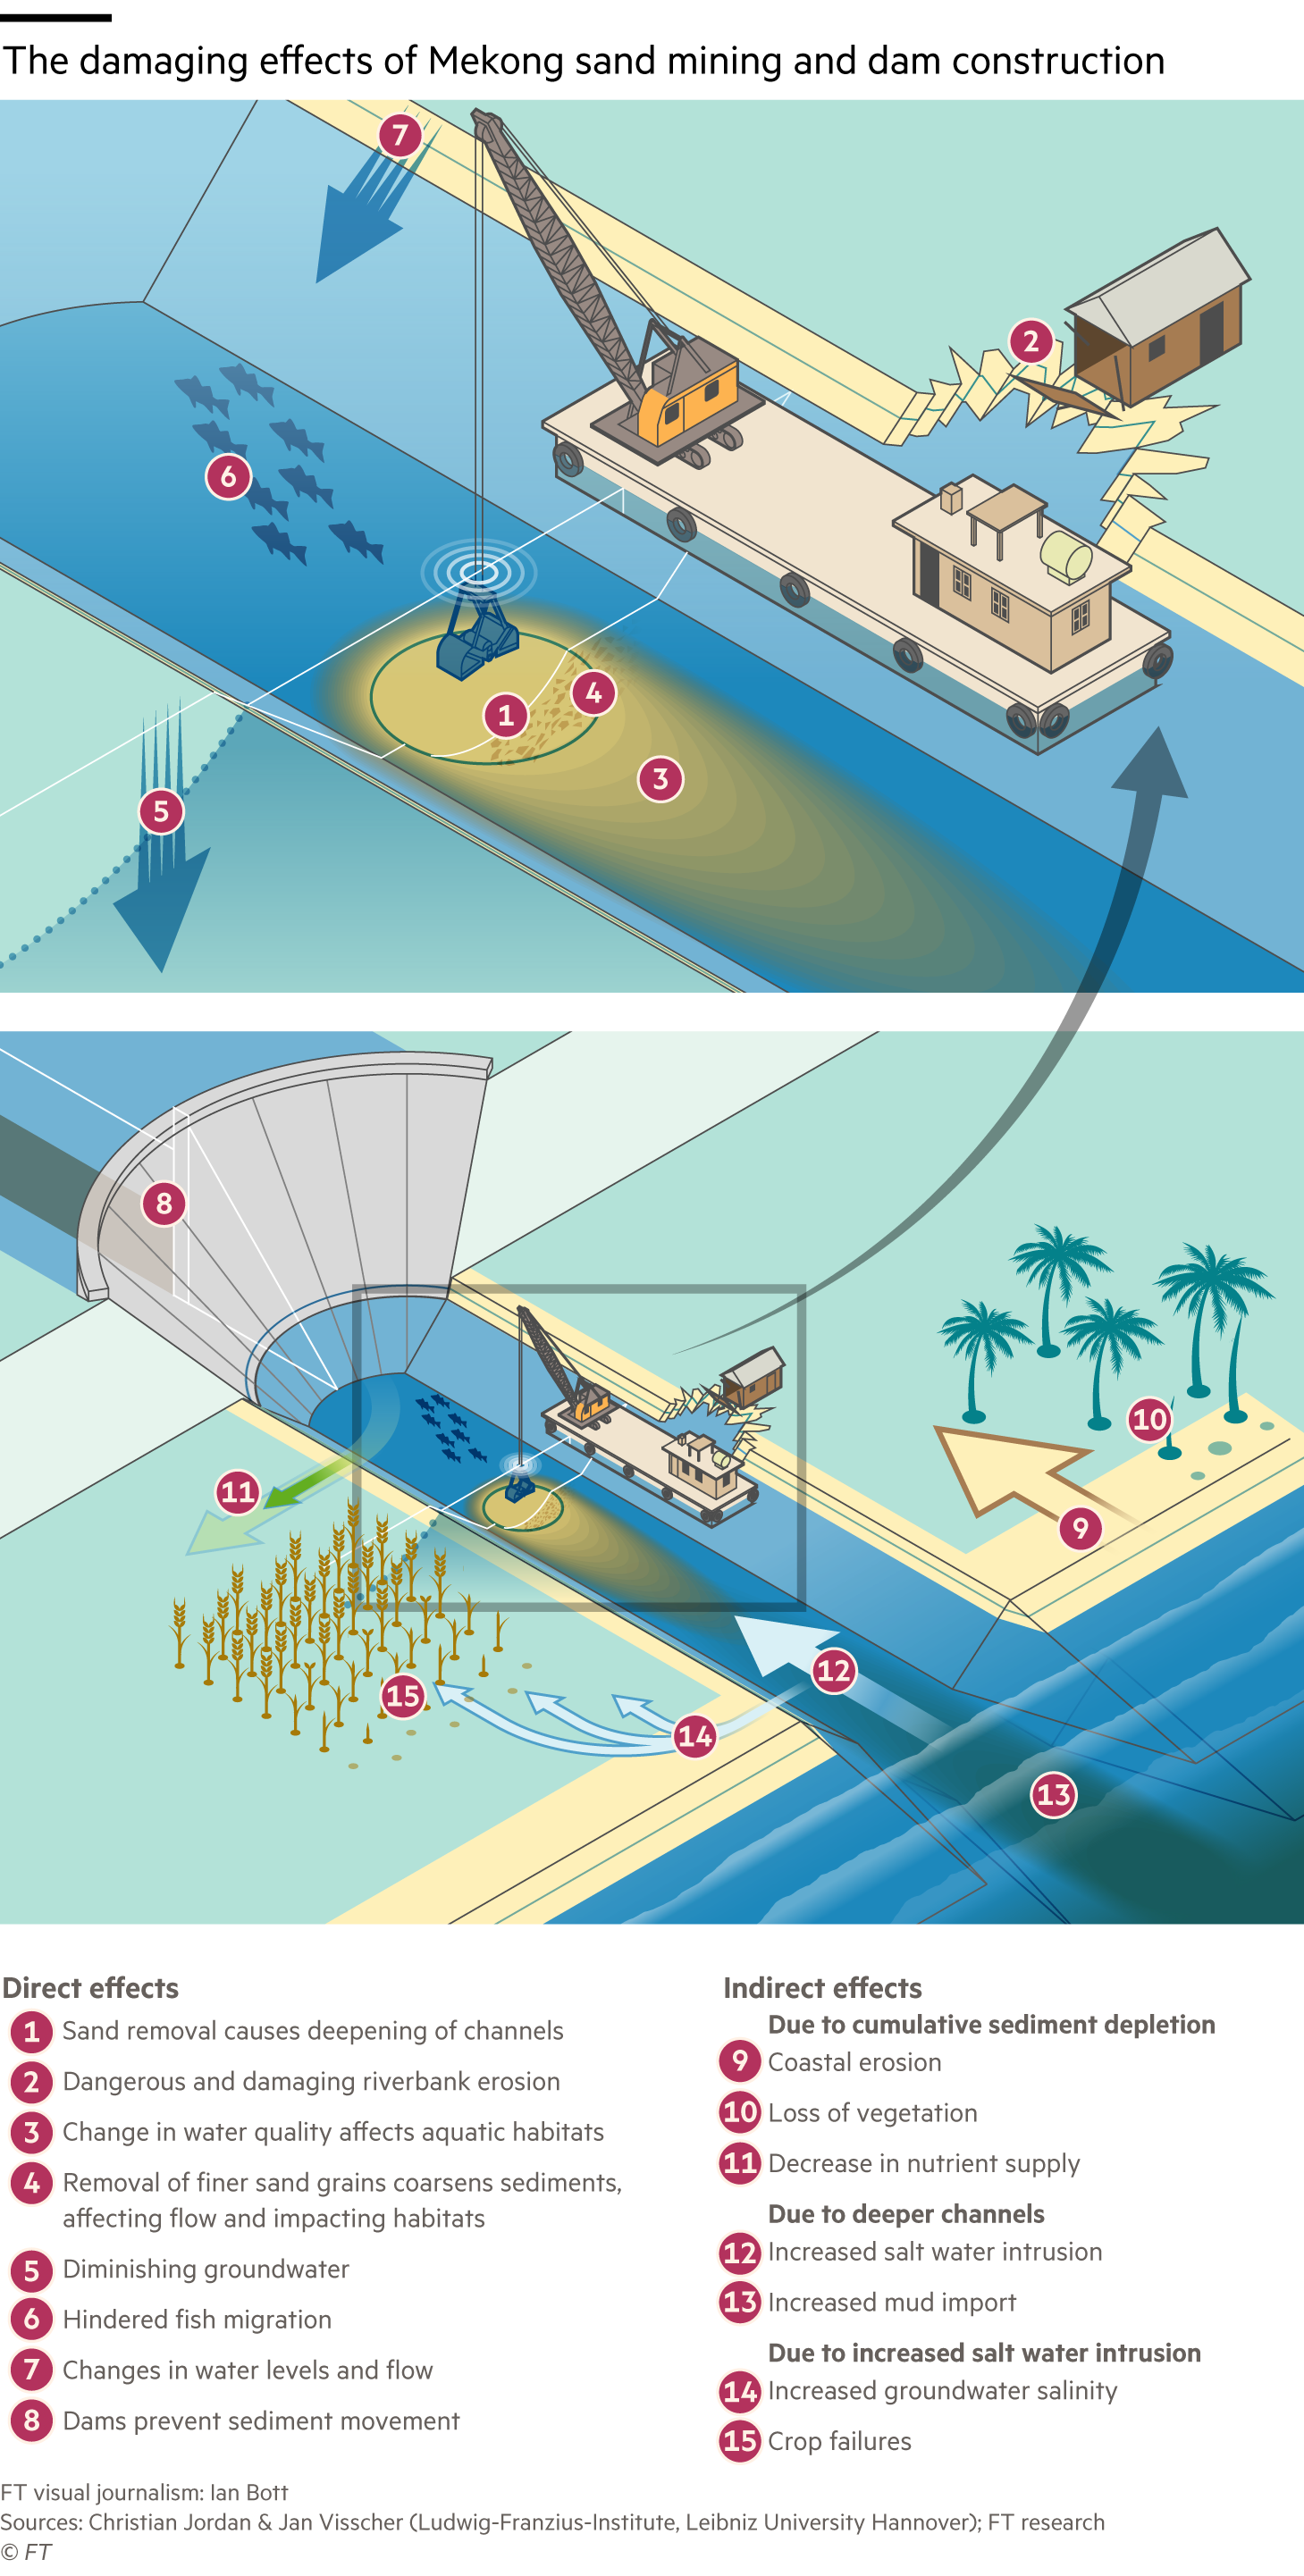 Information graphic explaining the direct and indirect damaging effects of sand mining and dam construction on the Mekong river